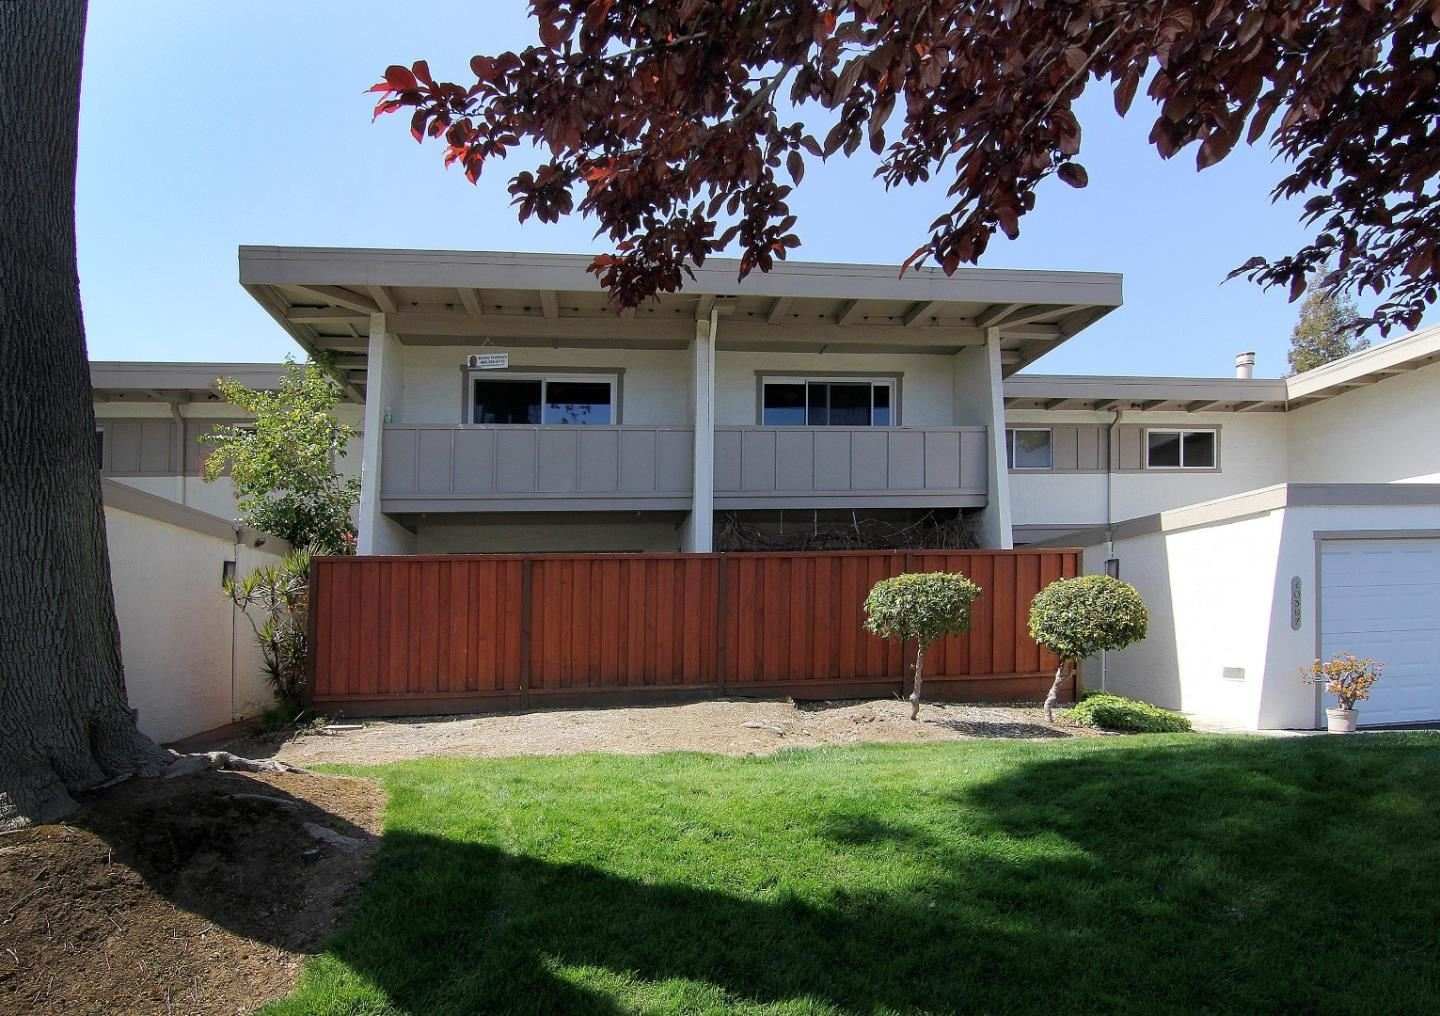 Photo for 10393 Mary AVE, CUPERTINO, CA 95014 (MLS # ML81836643)